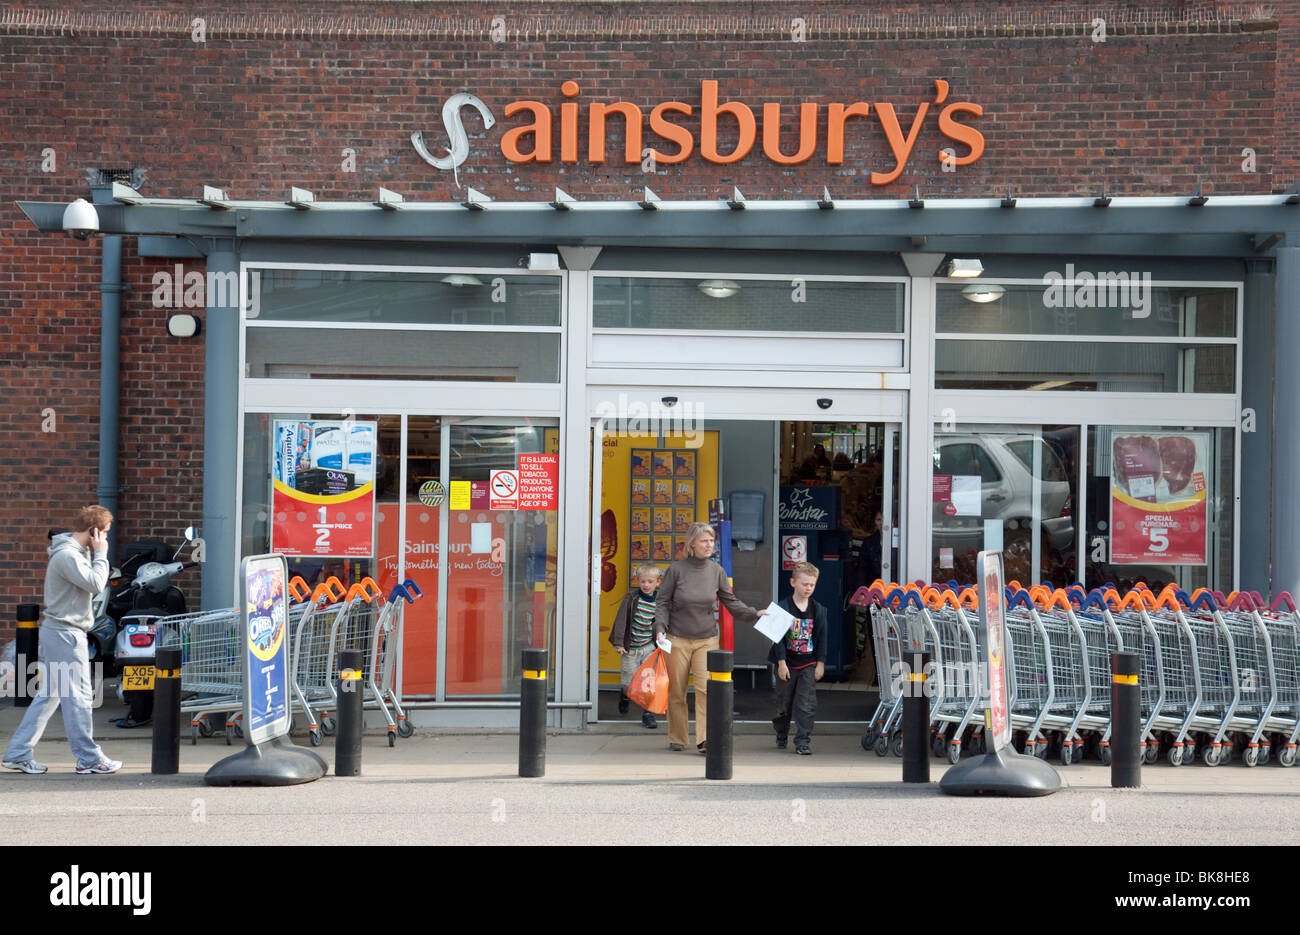 shoppers-outside-a-sainsburys-store-with-a-broken-sign-BK8HE8.jpg